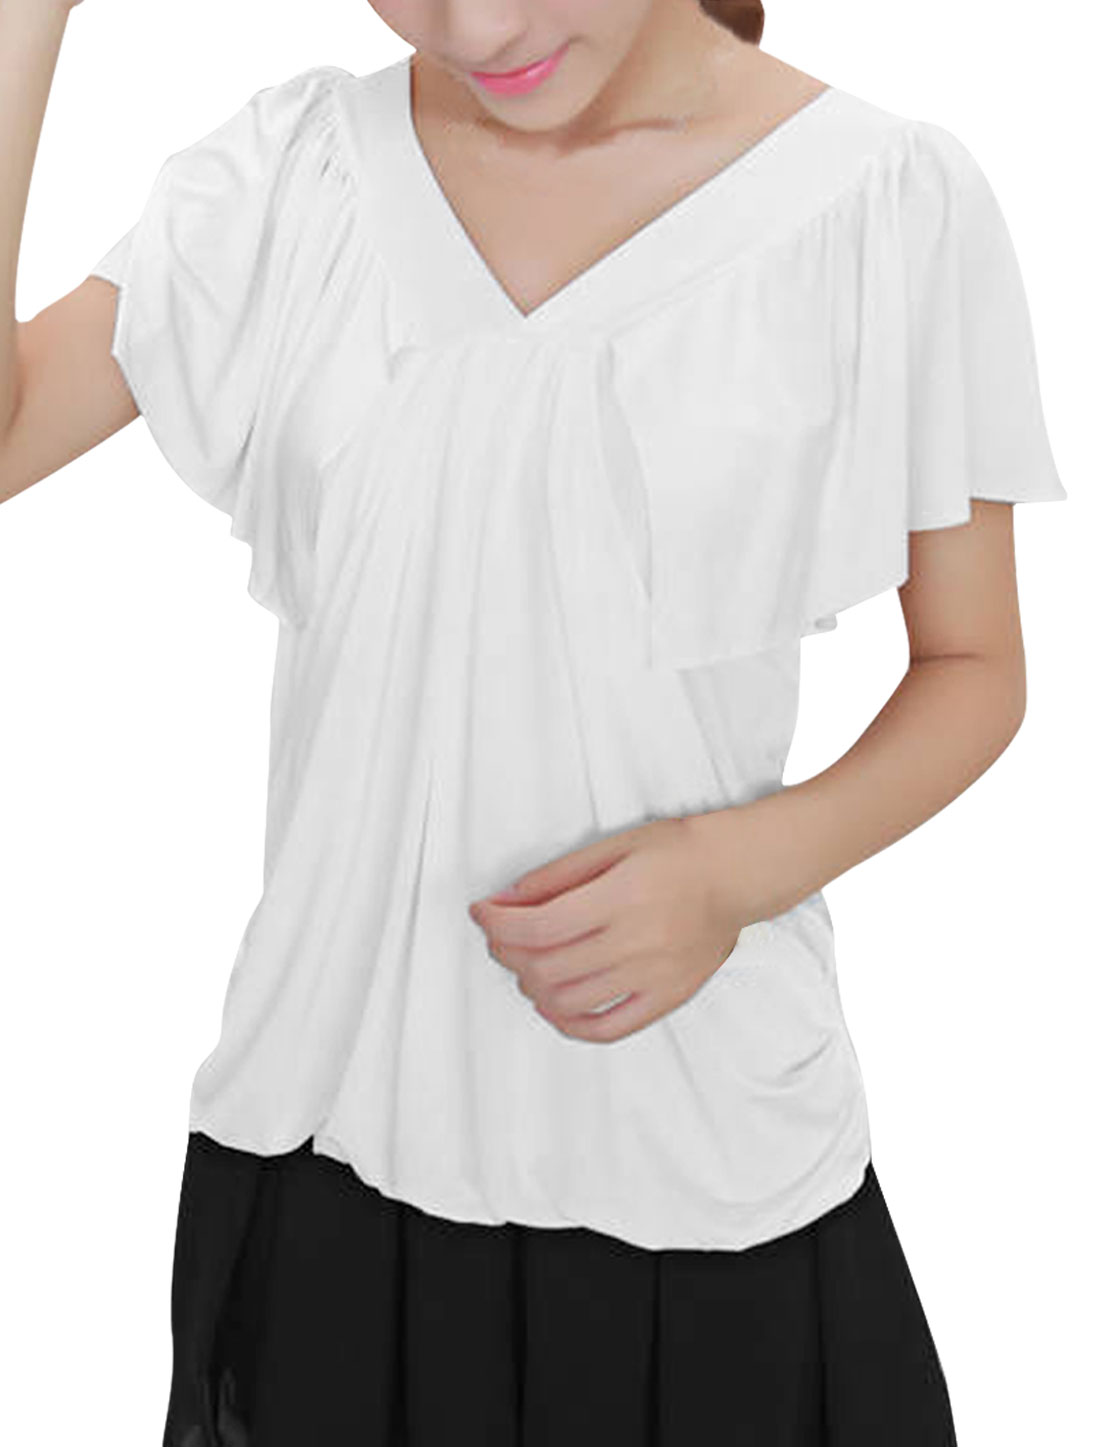 Woman Chic V-Neckline Flutter Sleeve Design Pure White Leisure Shirt XS